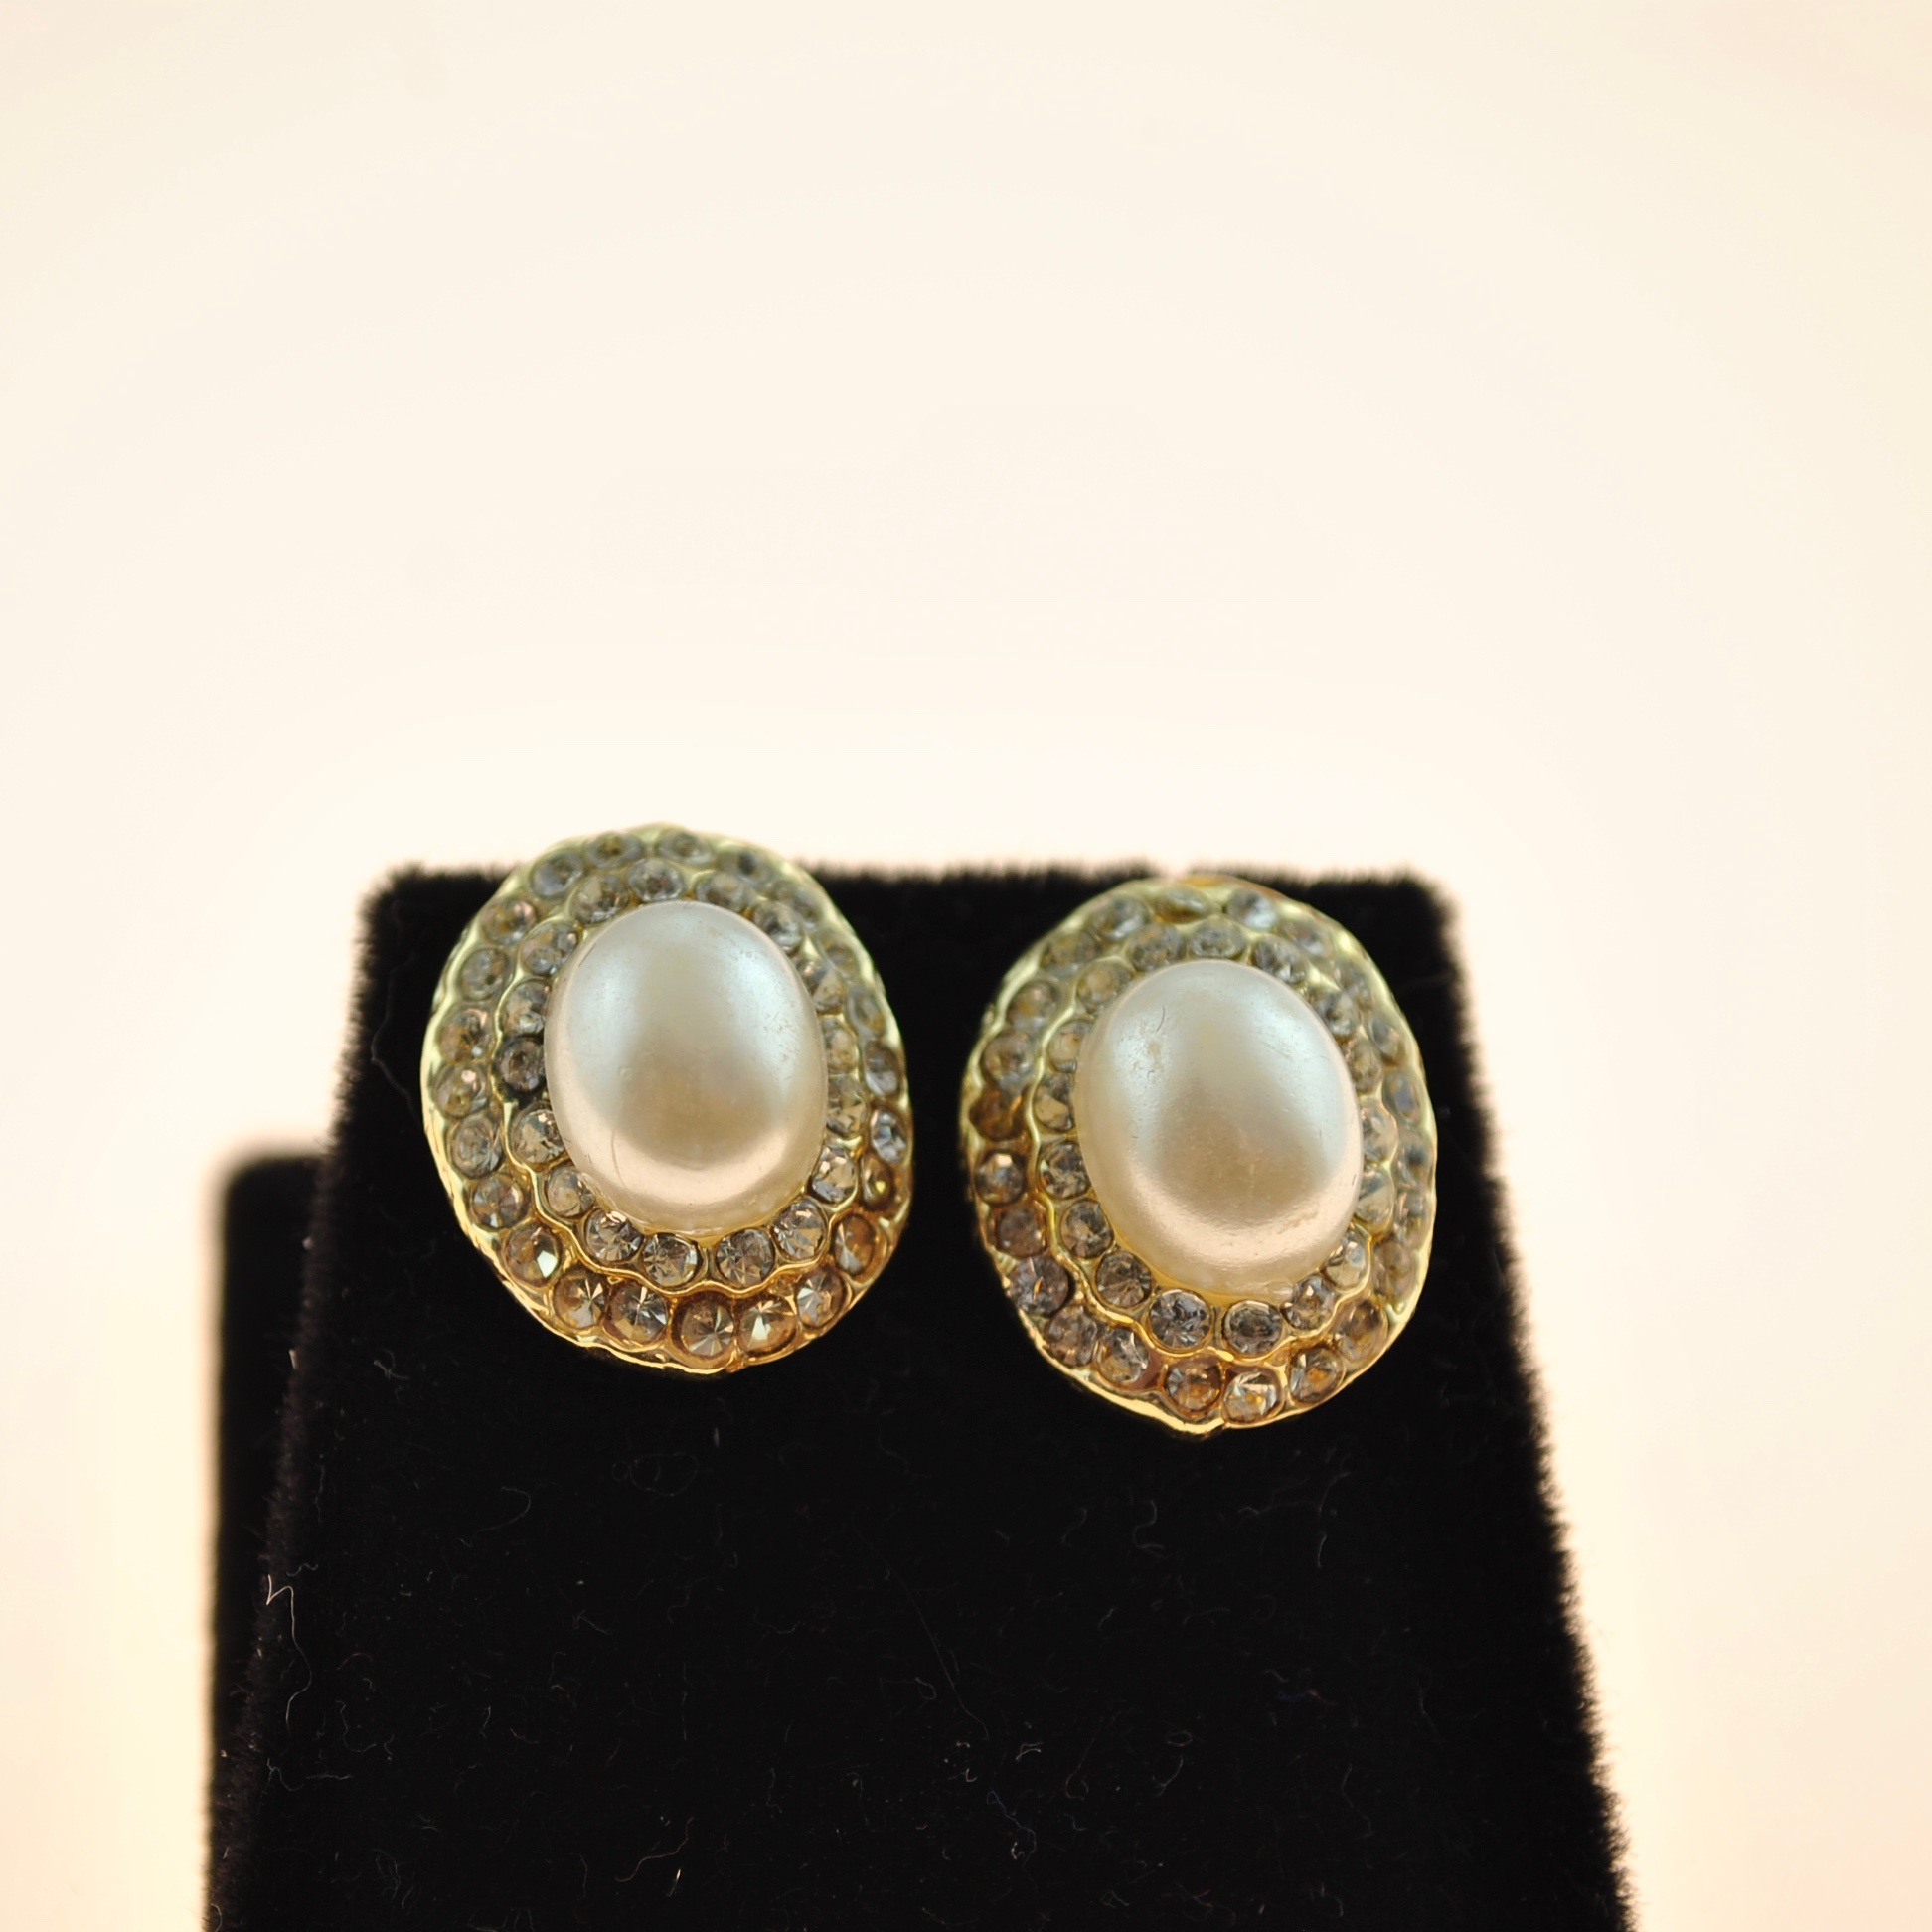 Pearl and Zircon Earrings